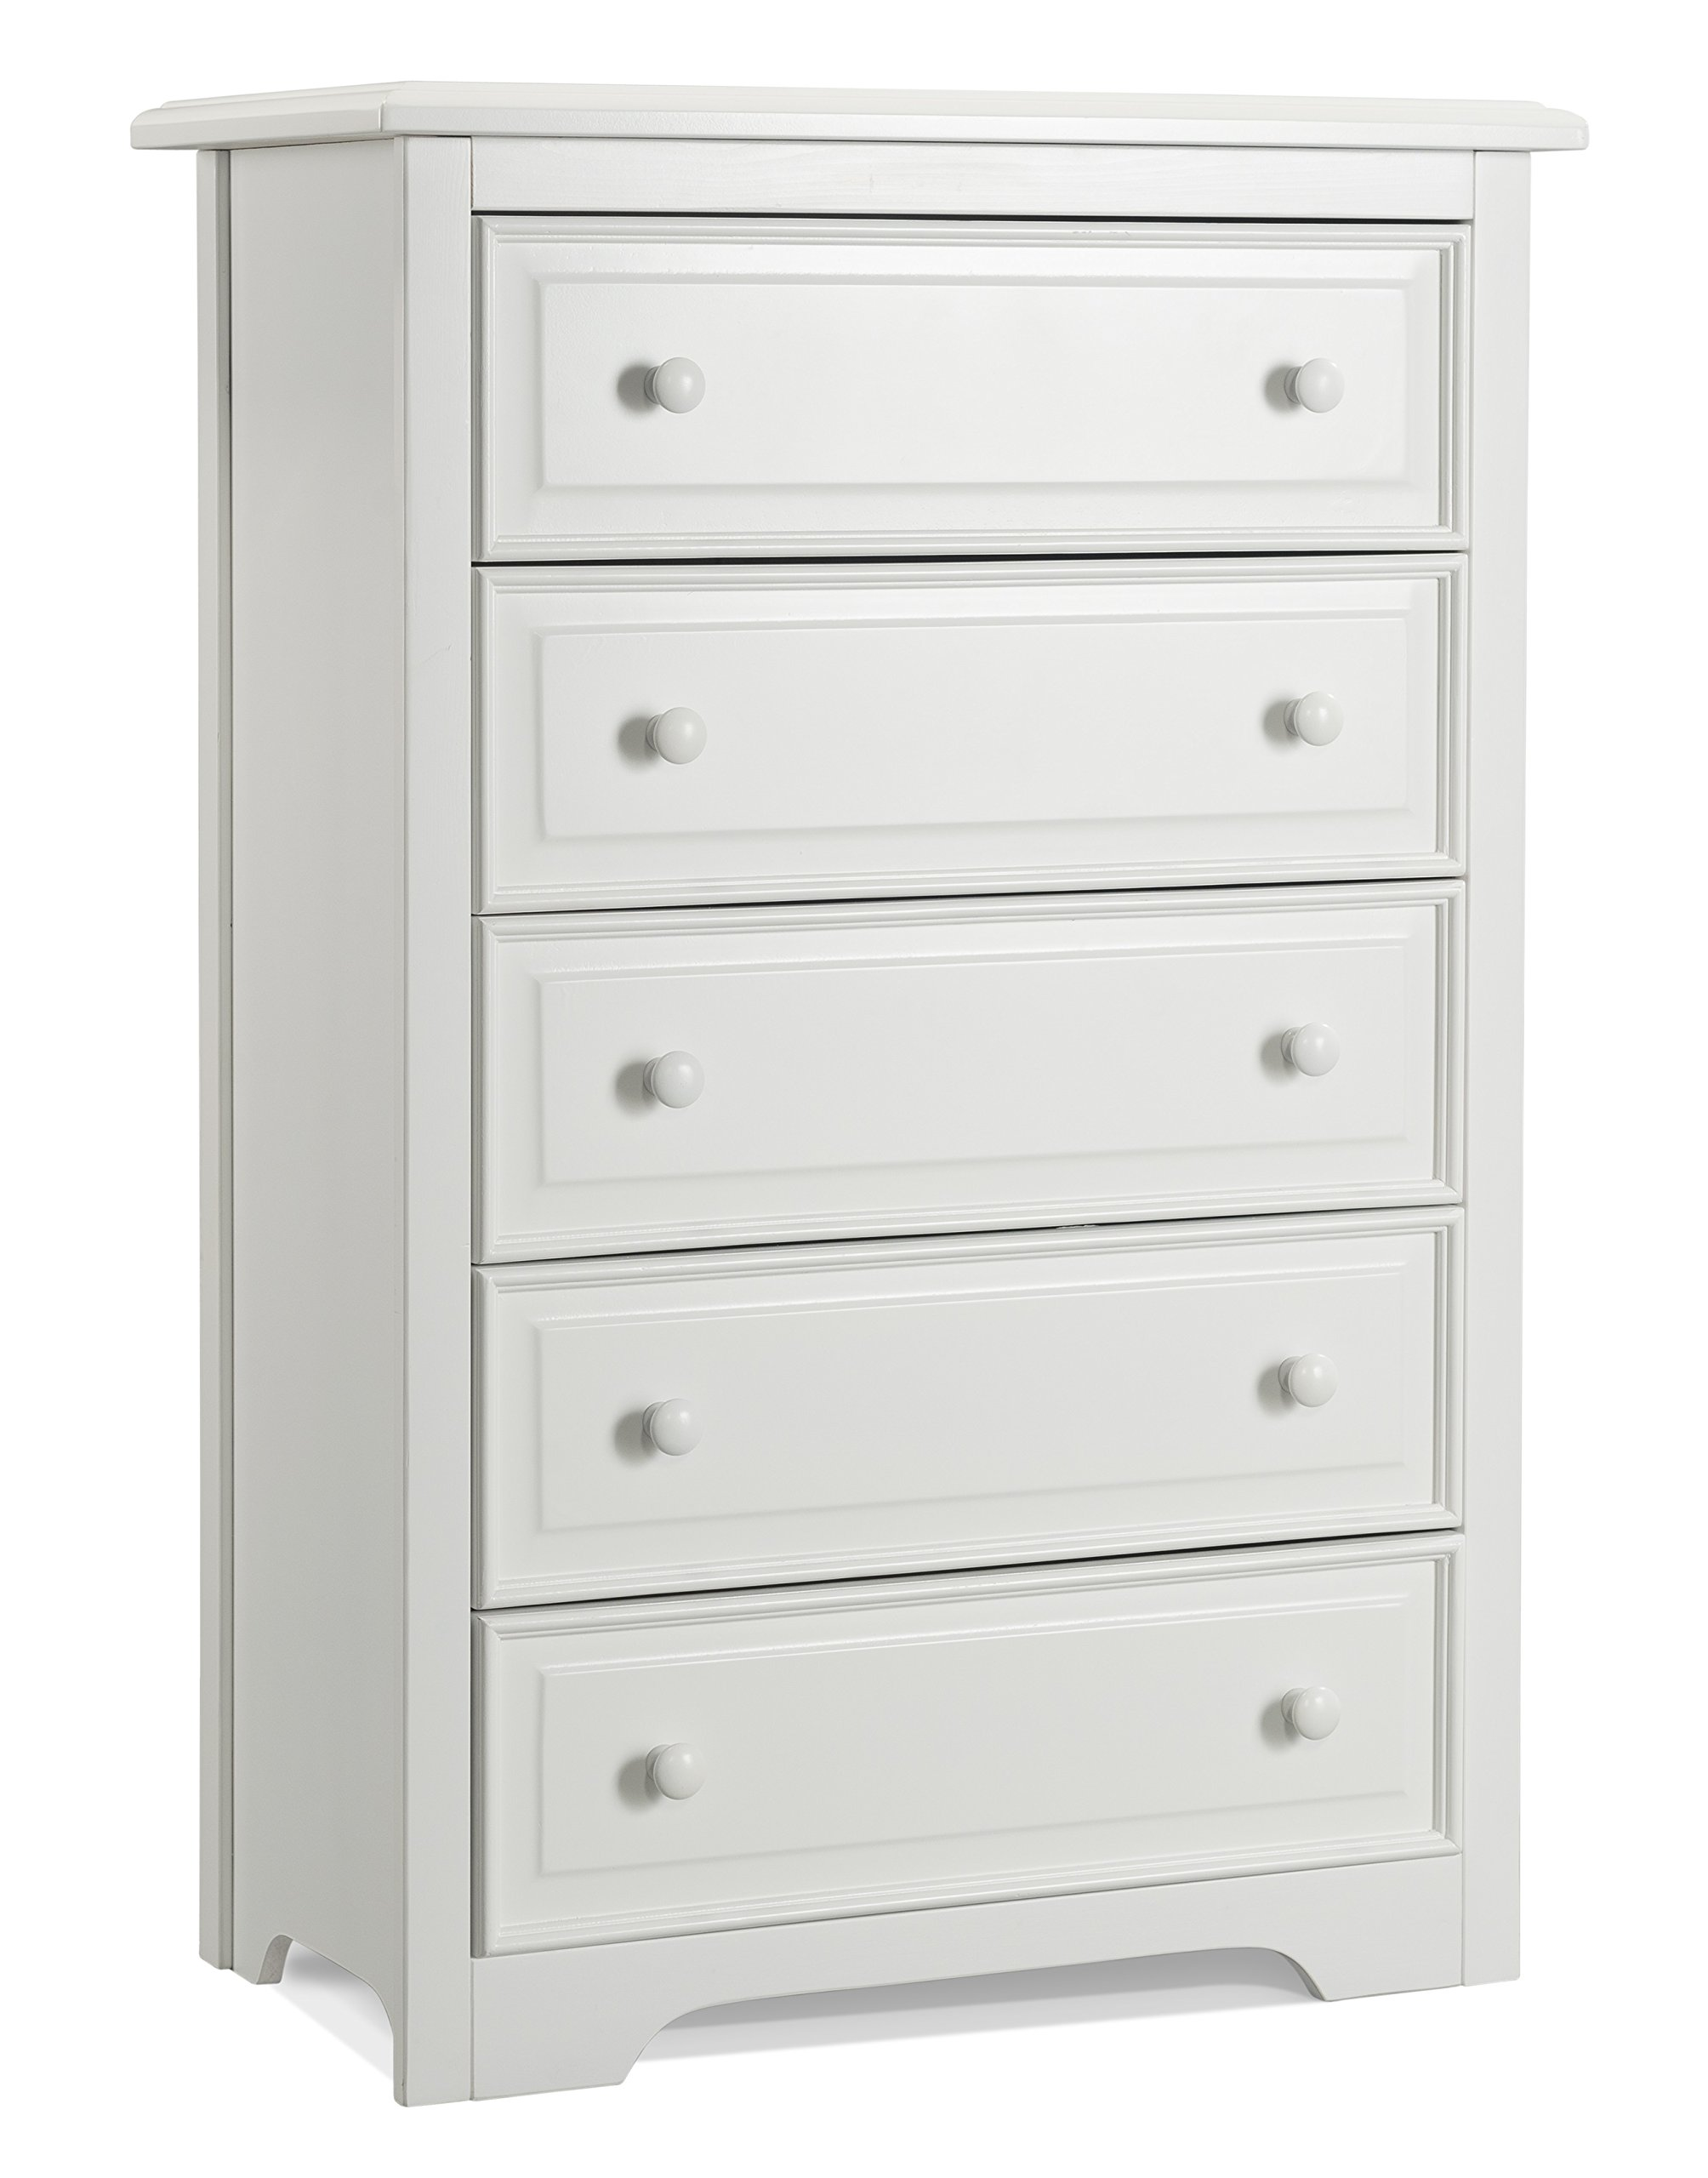 Graco Brooklyn 5 Drawer Chest, White by Storkcraft